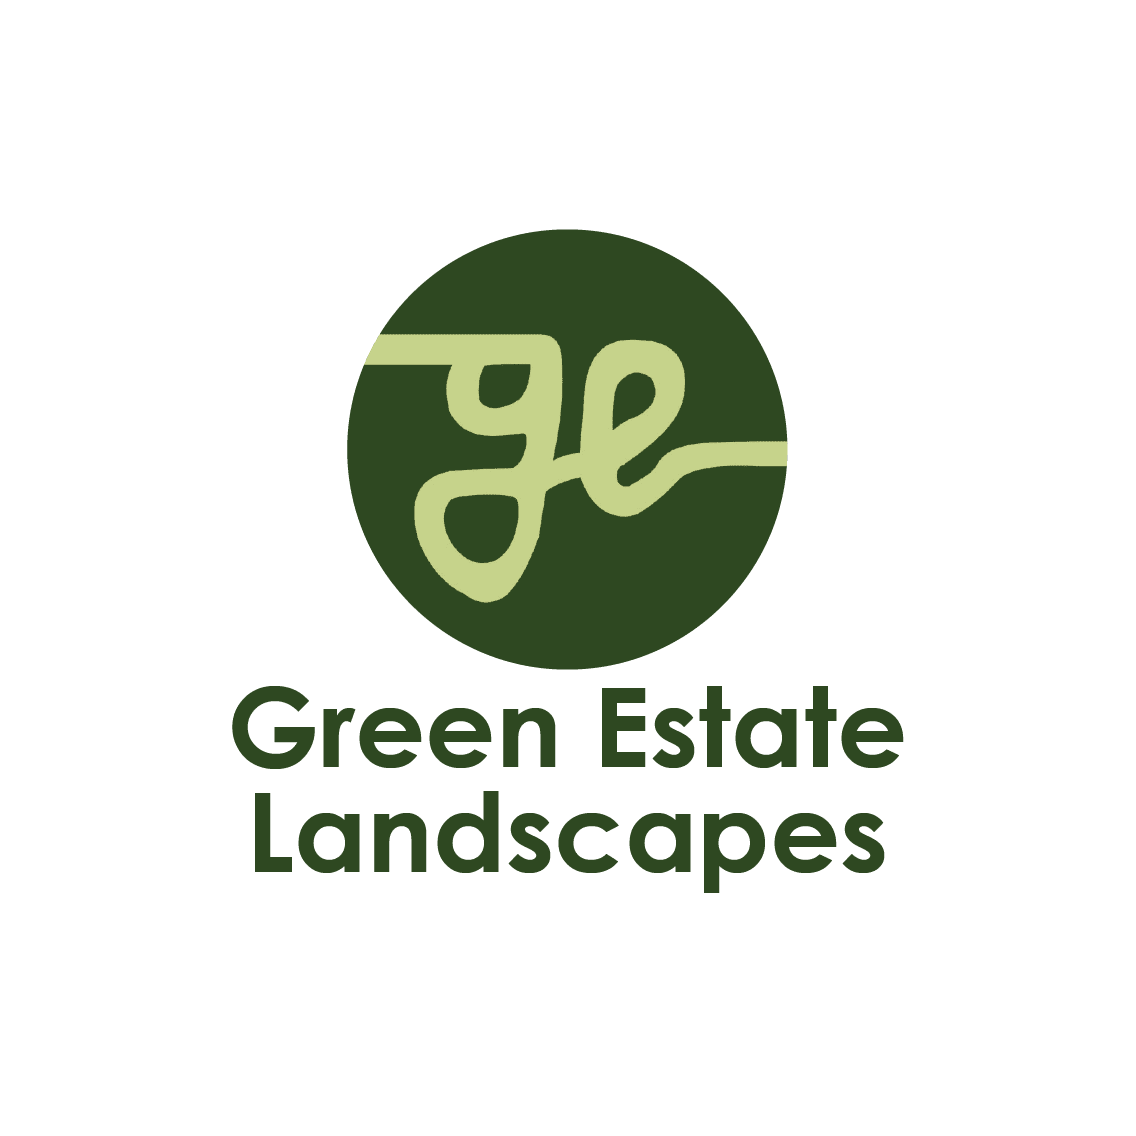 Green Estate Landscaping - Sheffield, South Yorkshire S2 1UL - 01142 677624 | ShowMeLocal.com